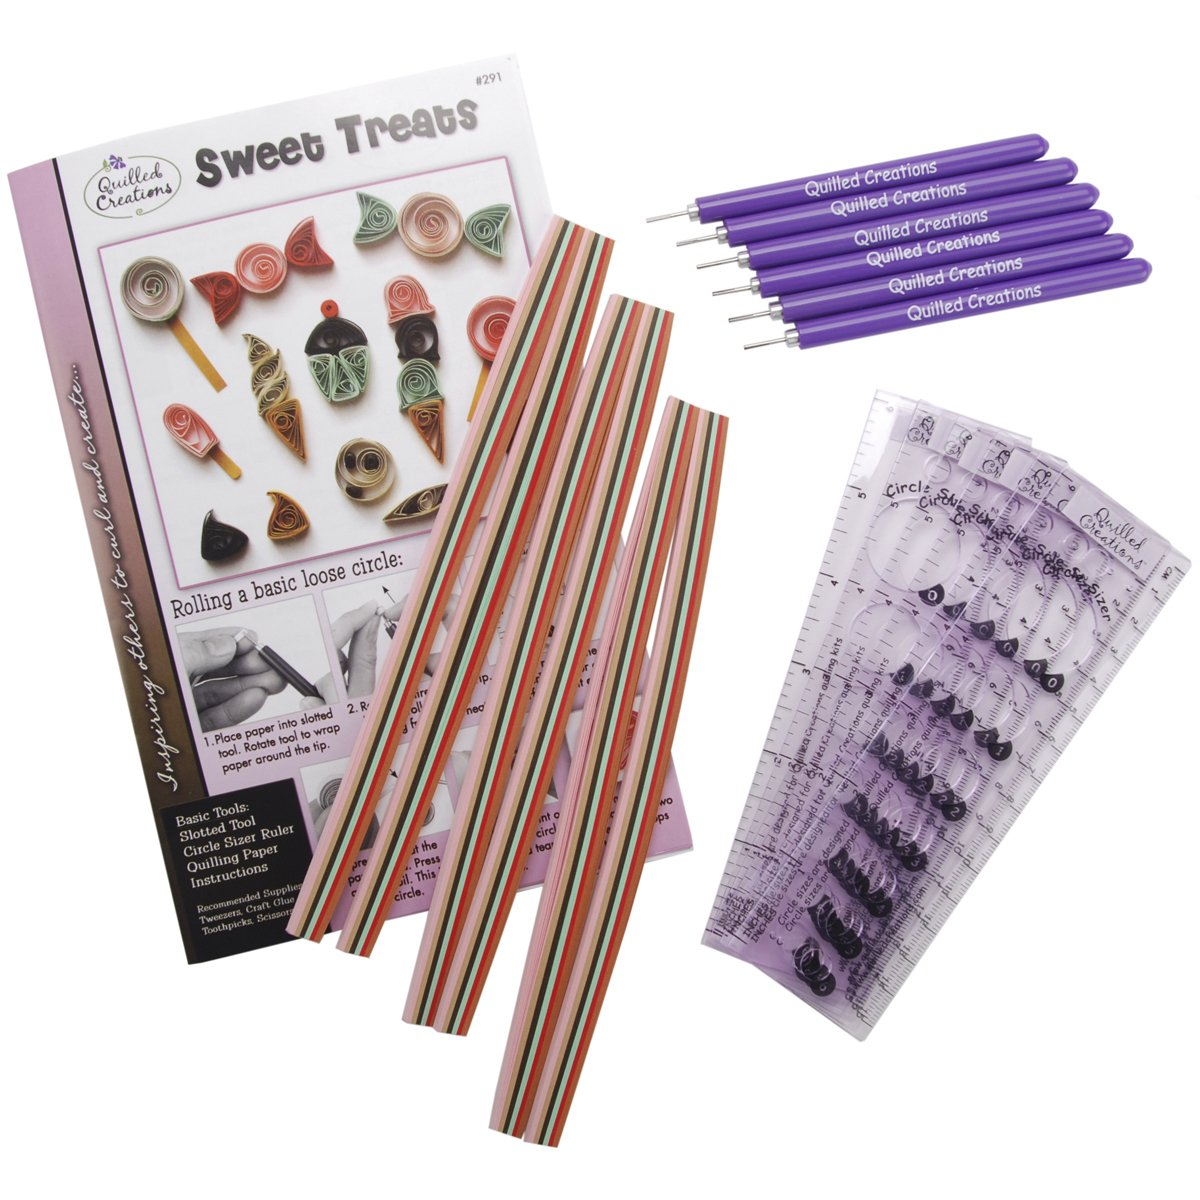 Quilled Creations Quilling Class Pack Kit, Sweet Treats